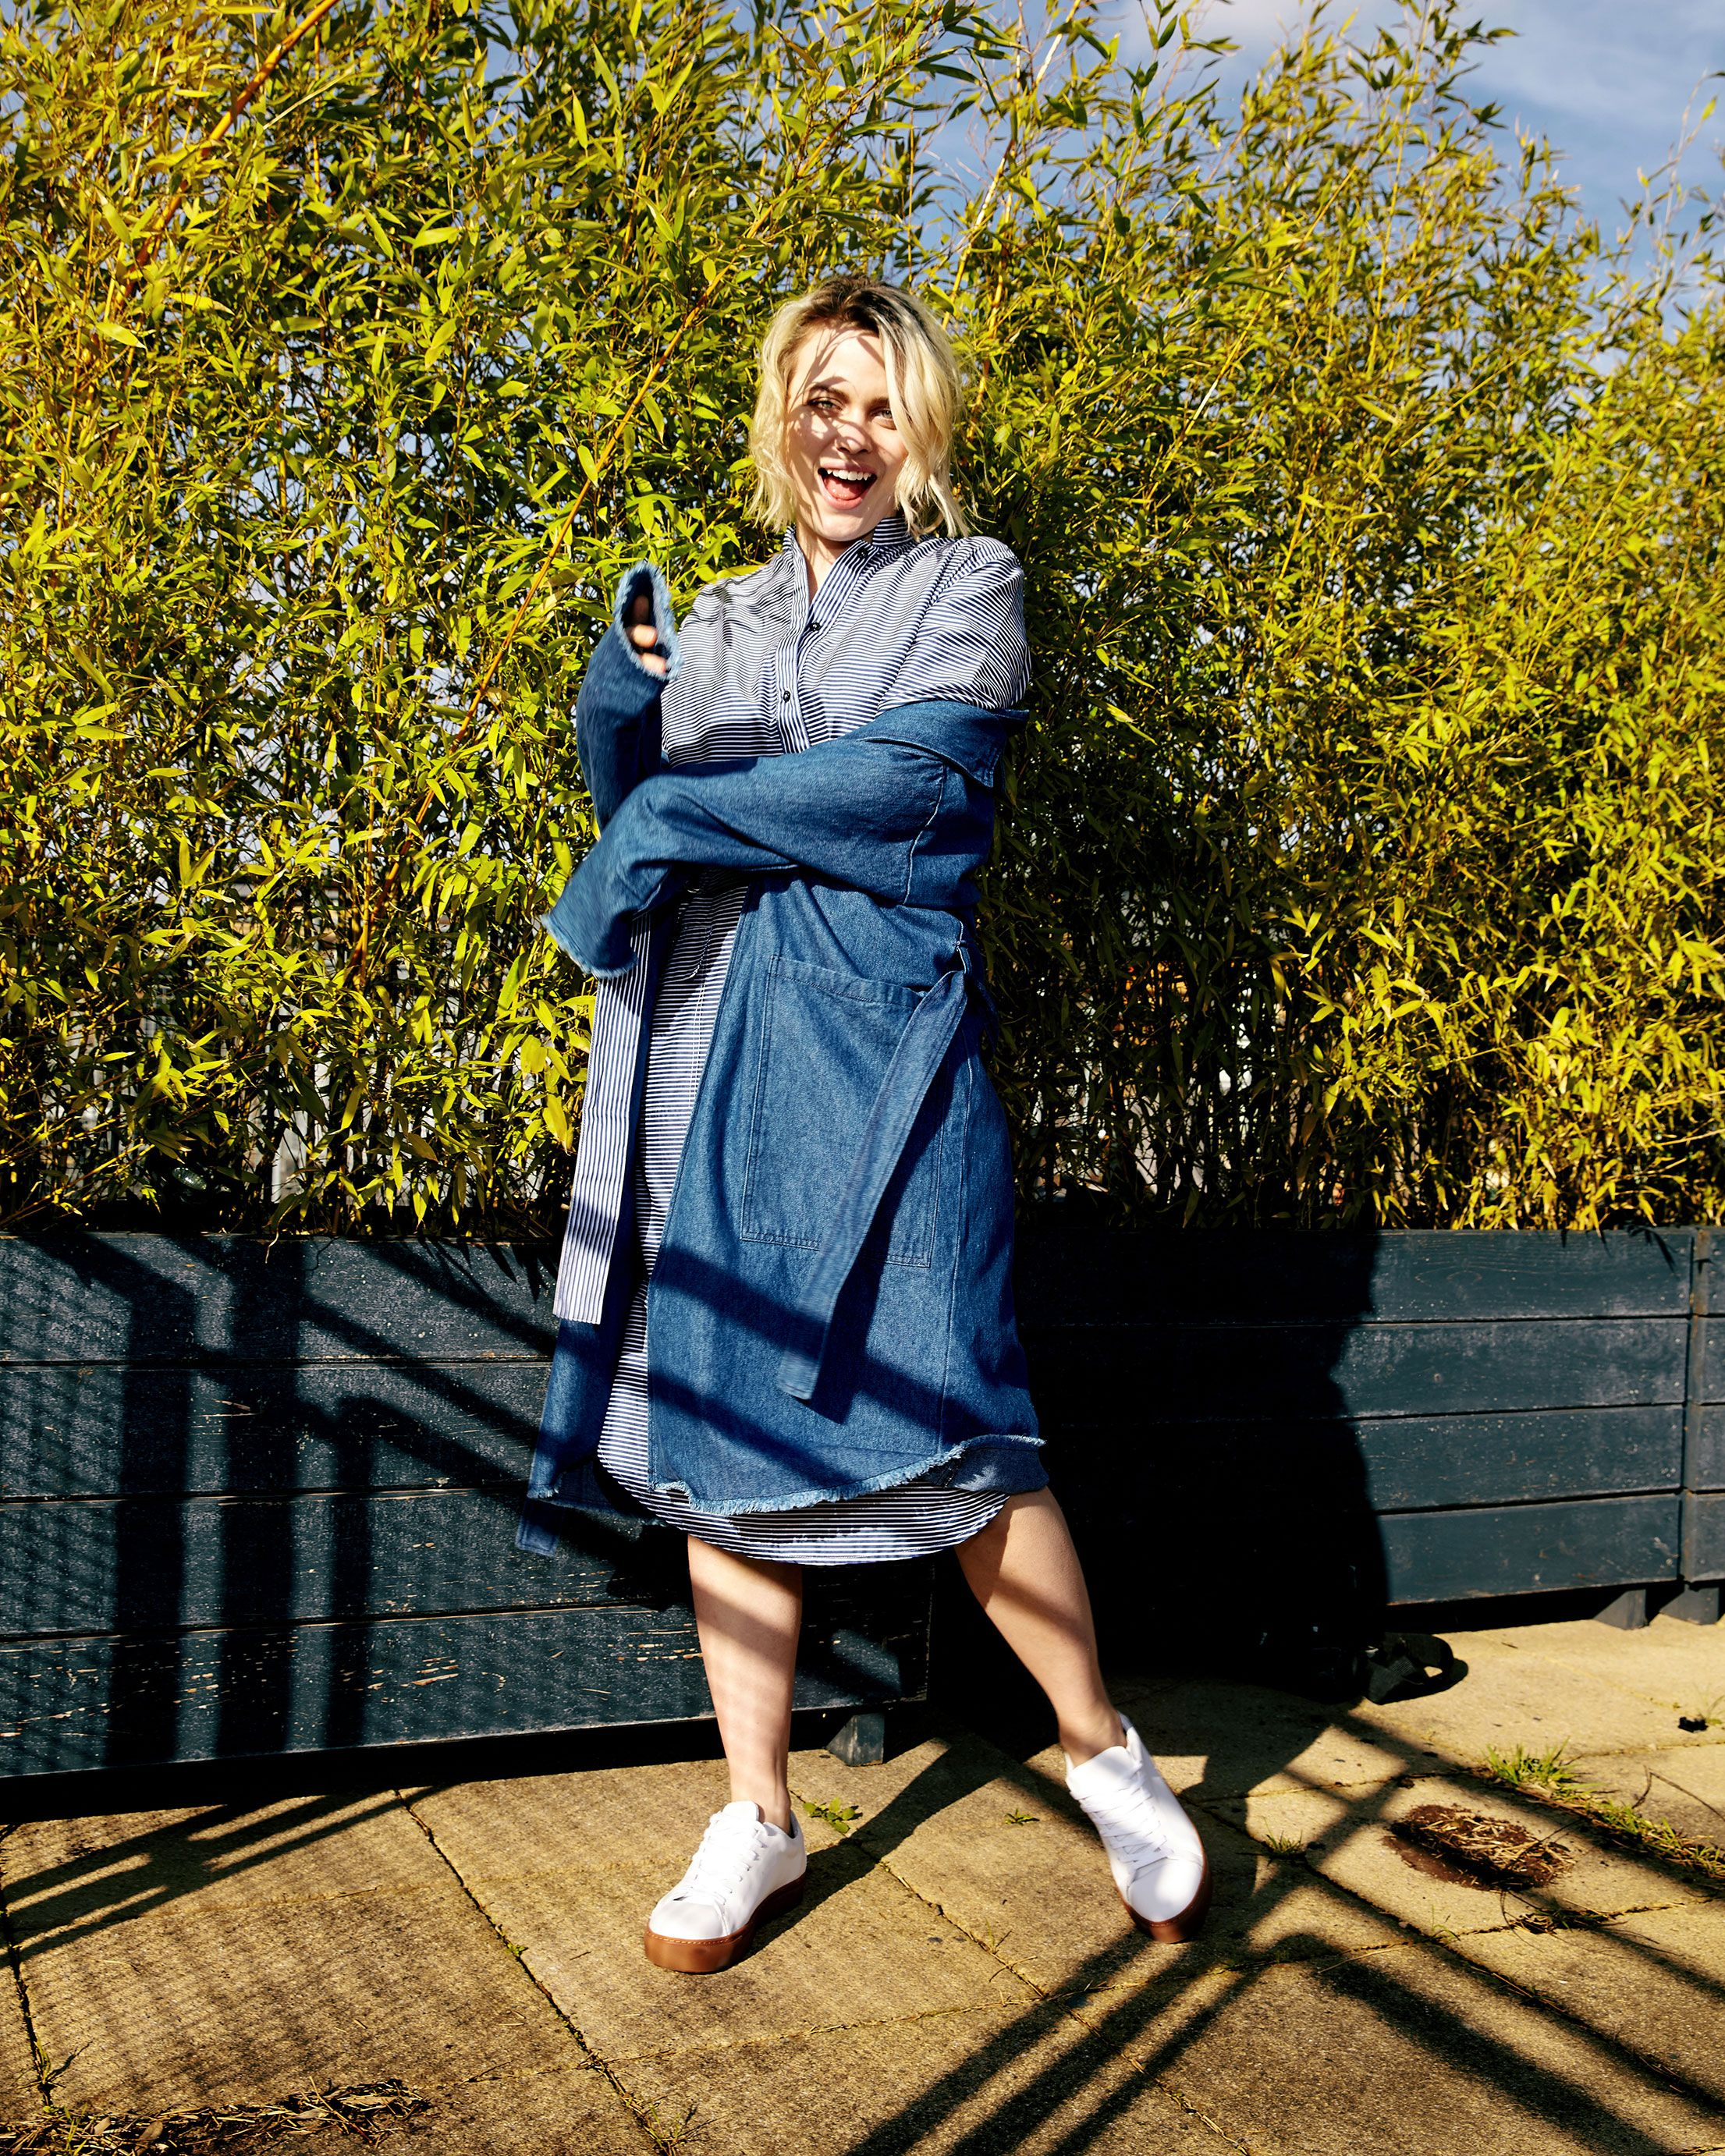 f47984654eb AIDA Shoreditch SS17 photoshoot featuring Mads Norgaard striped shirt dress  and Minimum DK denim coat on model Wilma.